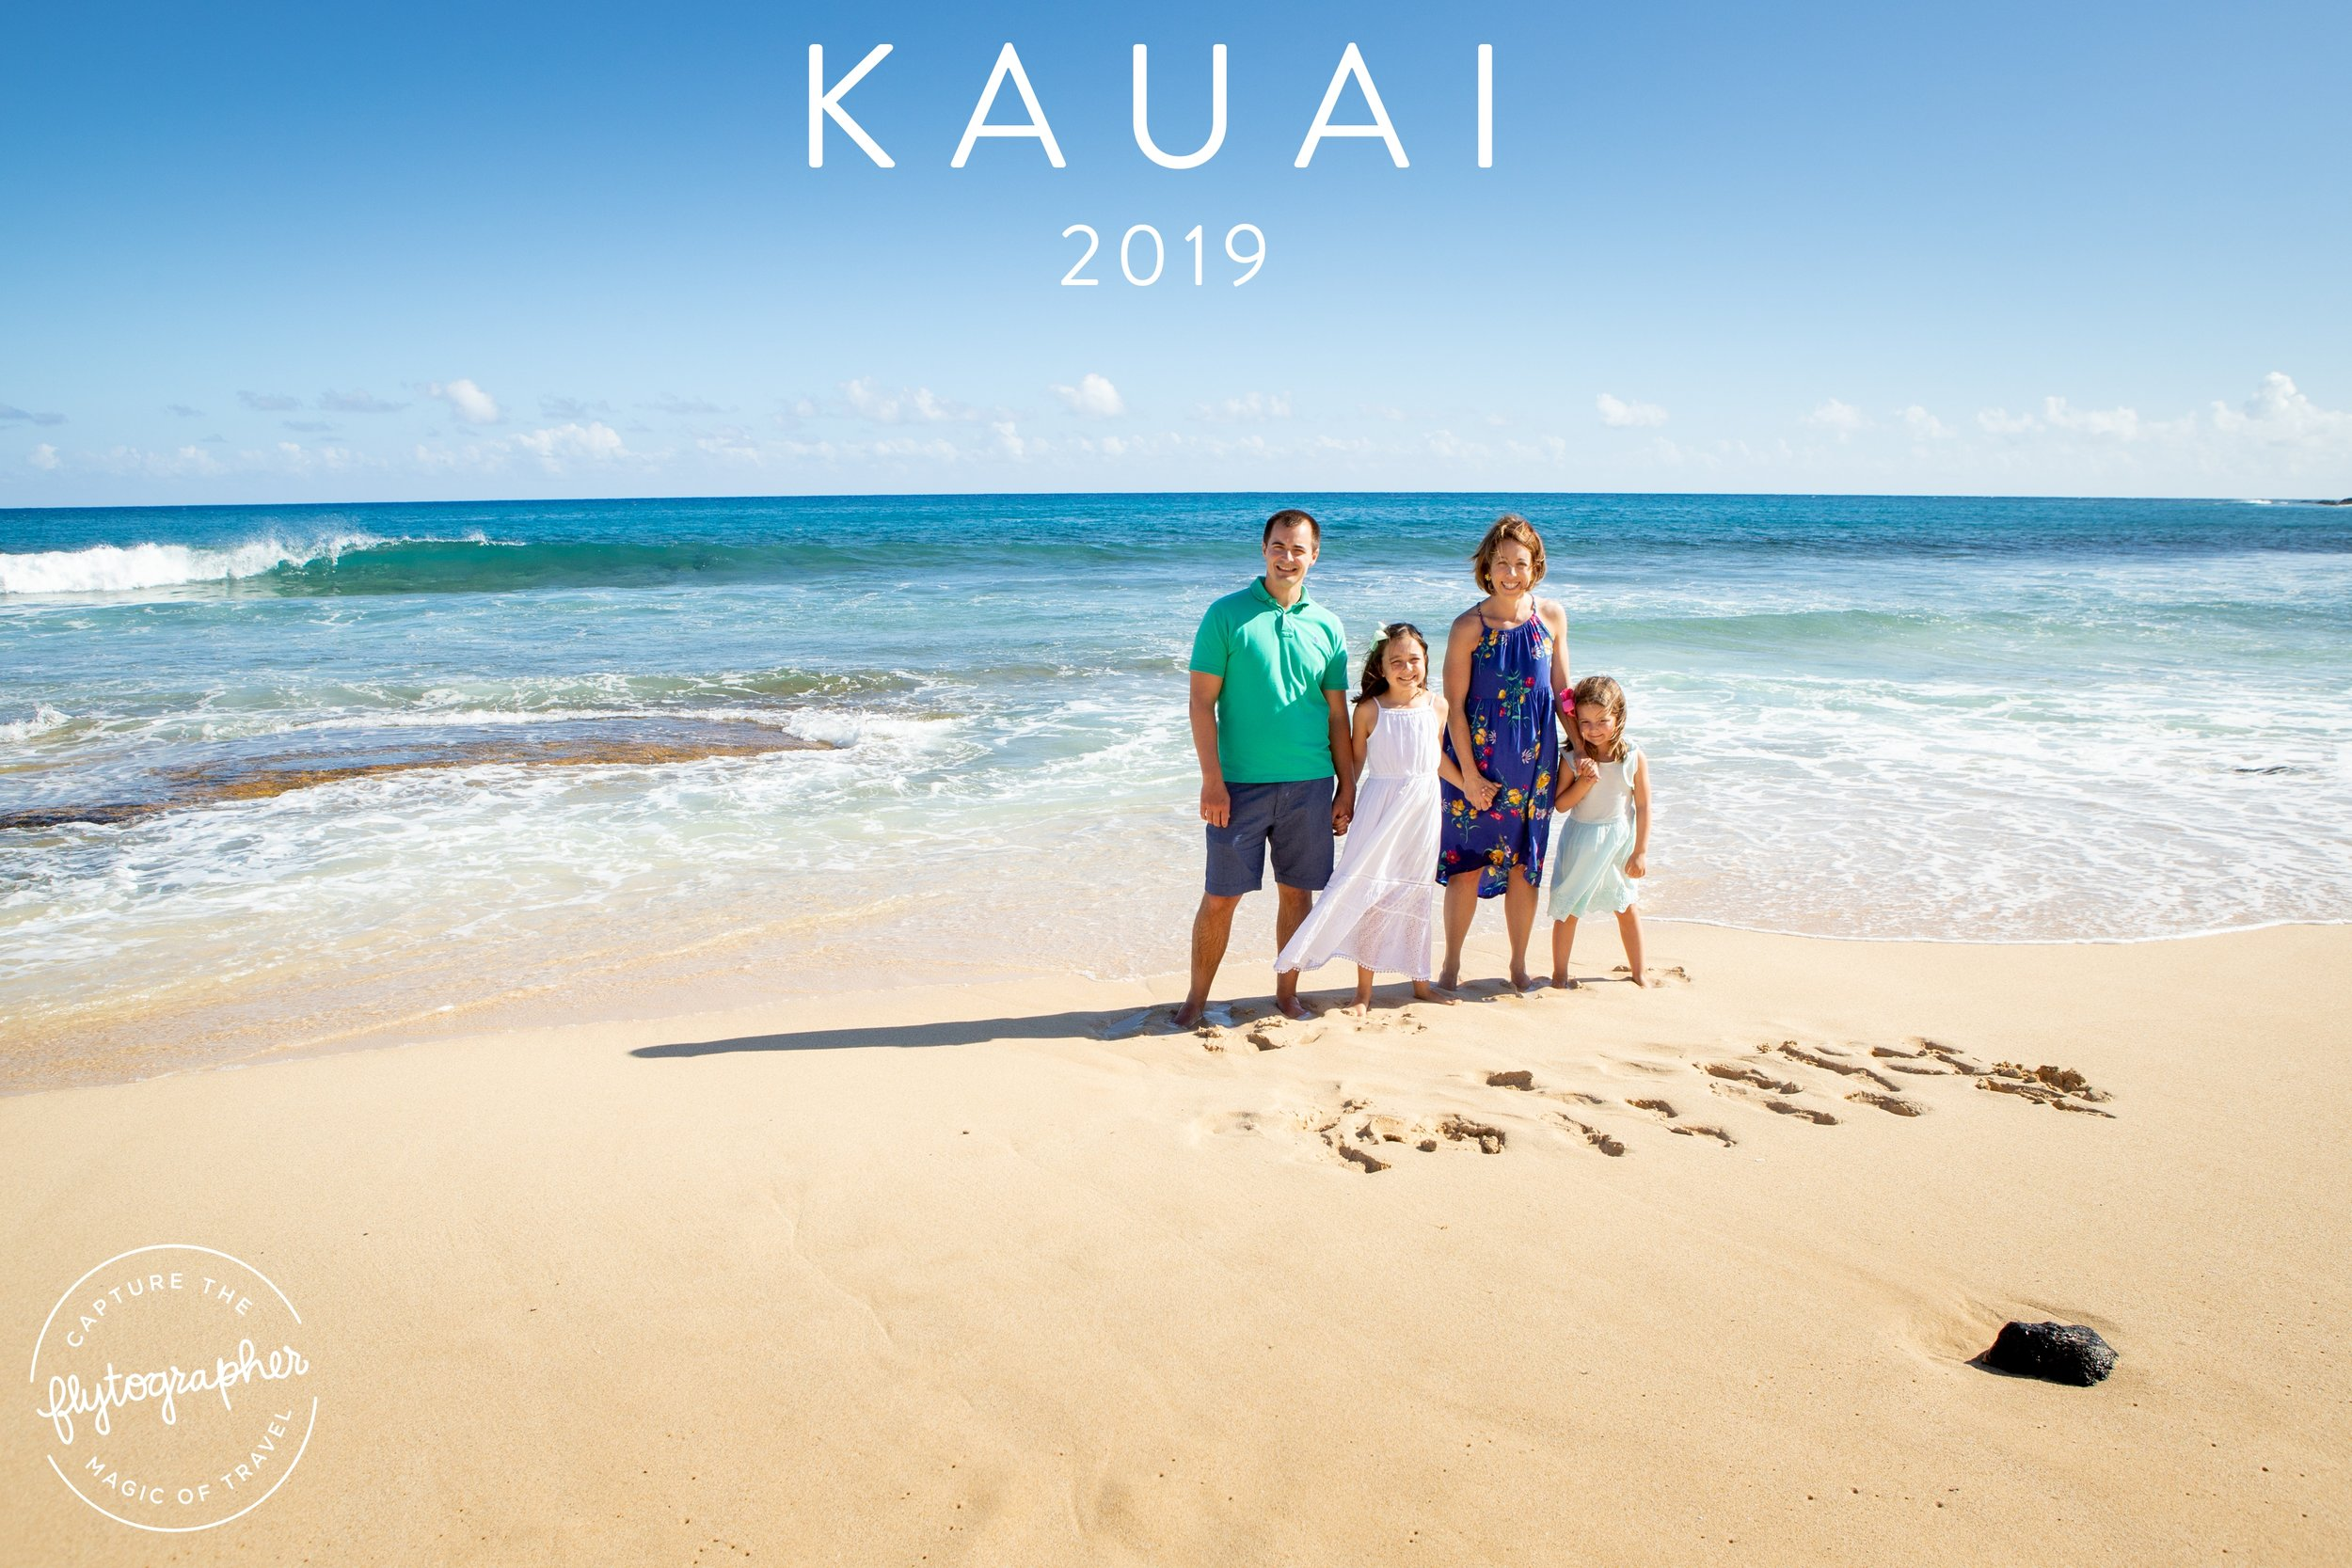 One of my favorite experiences was doing family pictures while in Kauai! Pictures to last a lifetime! We loved using Flytographer.